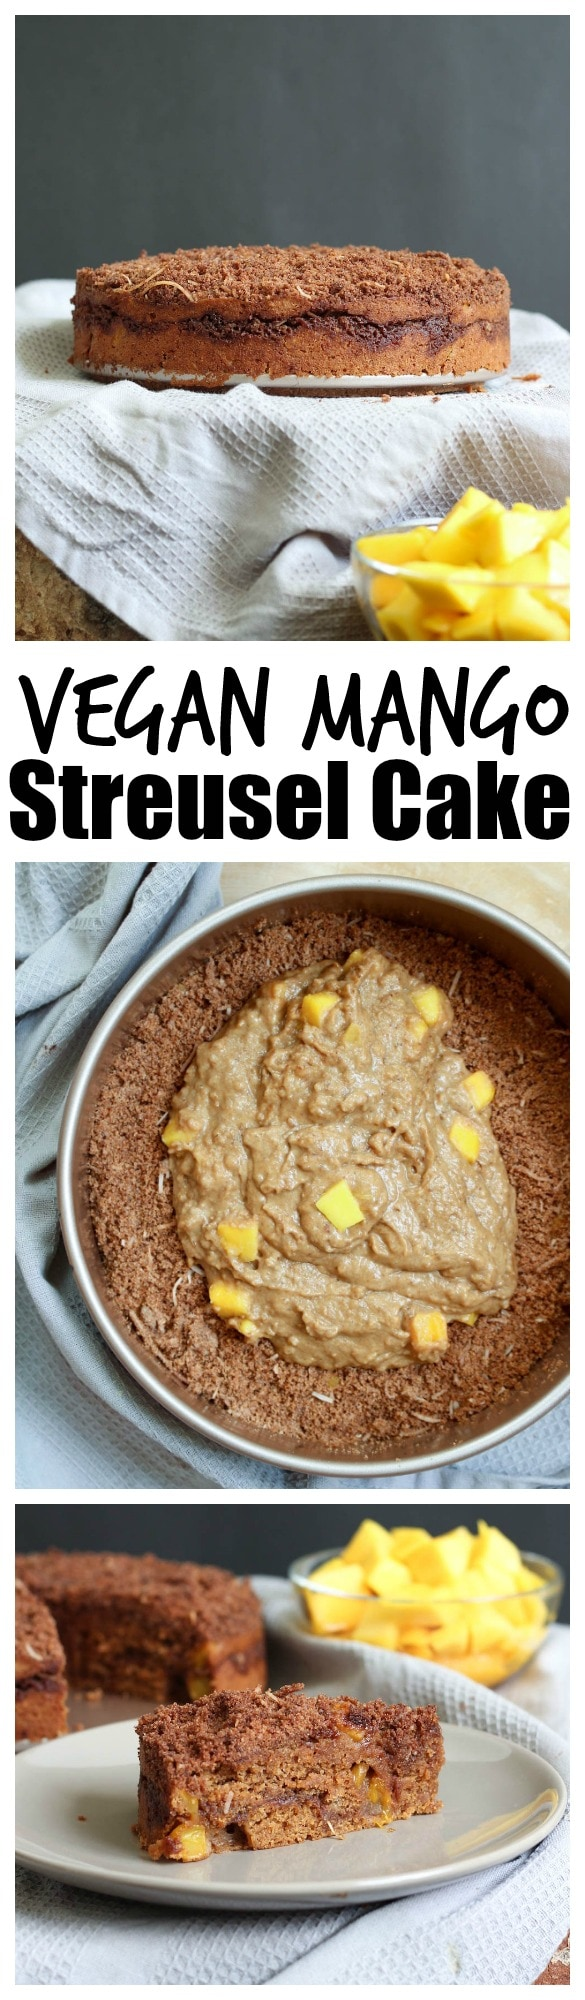 Vegan Mango Streusel Cake The Conscientious Eater How Is The Best Way To  Eat A Mango